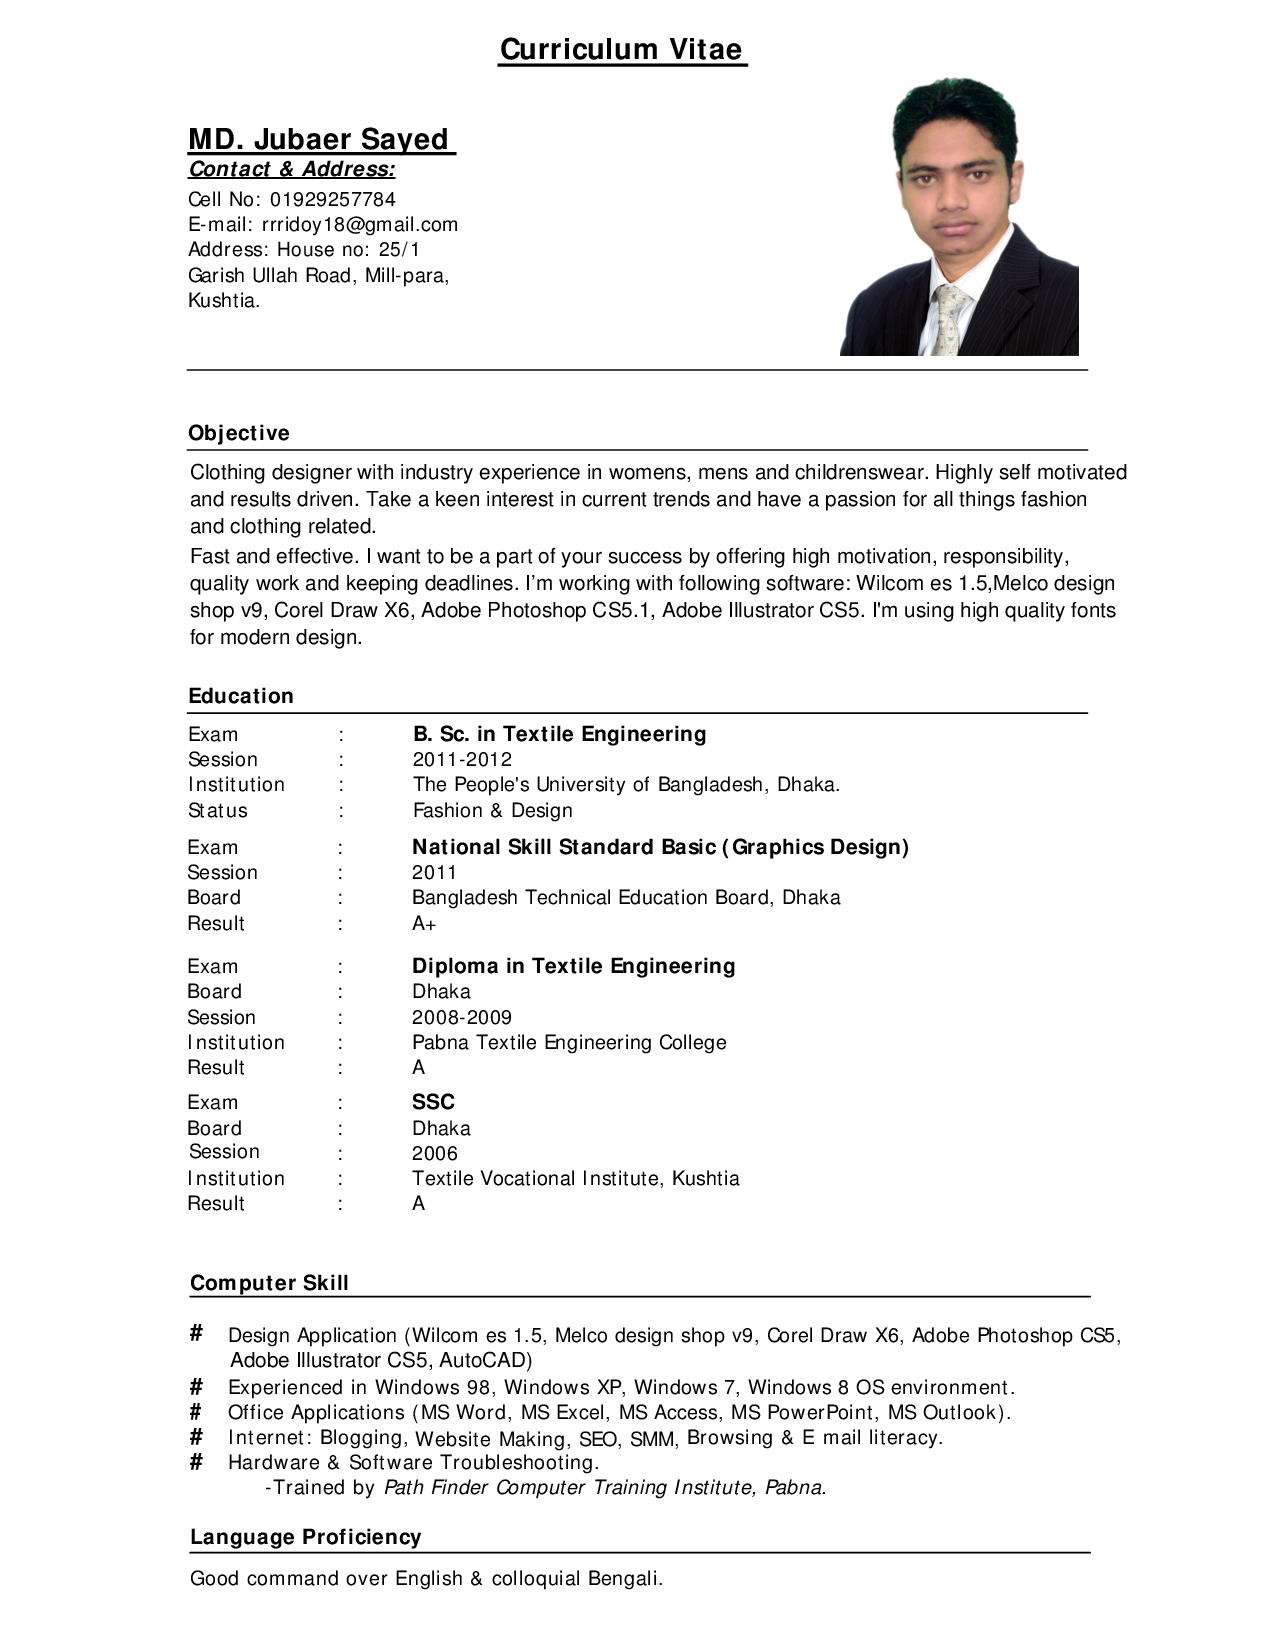 example resume  computer skills and education for curriculum vitae resume samples pdf